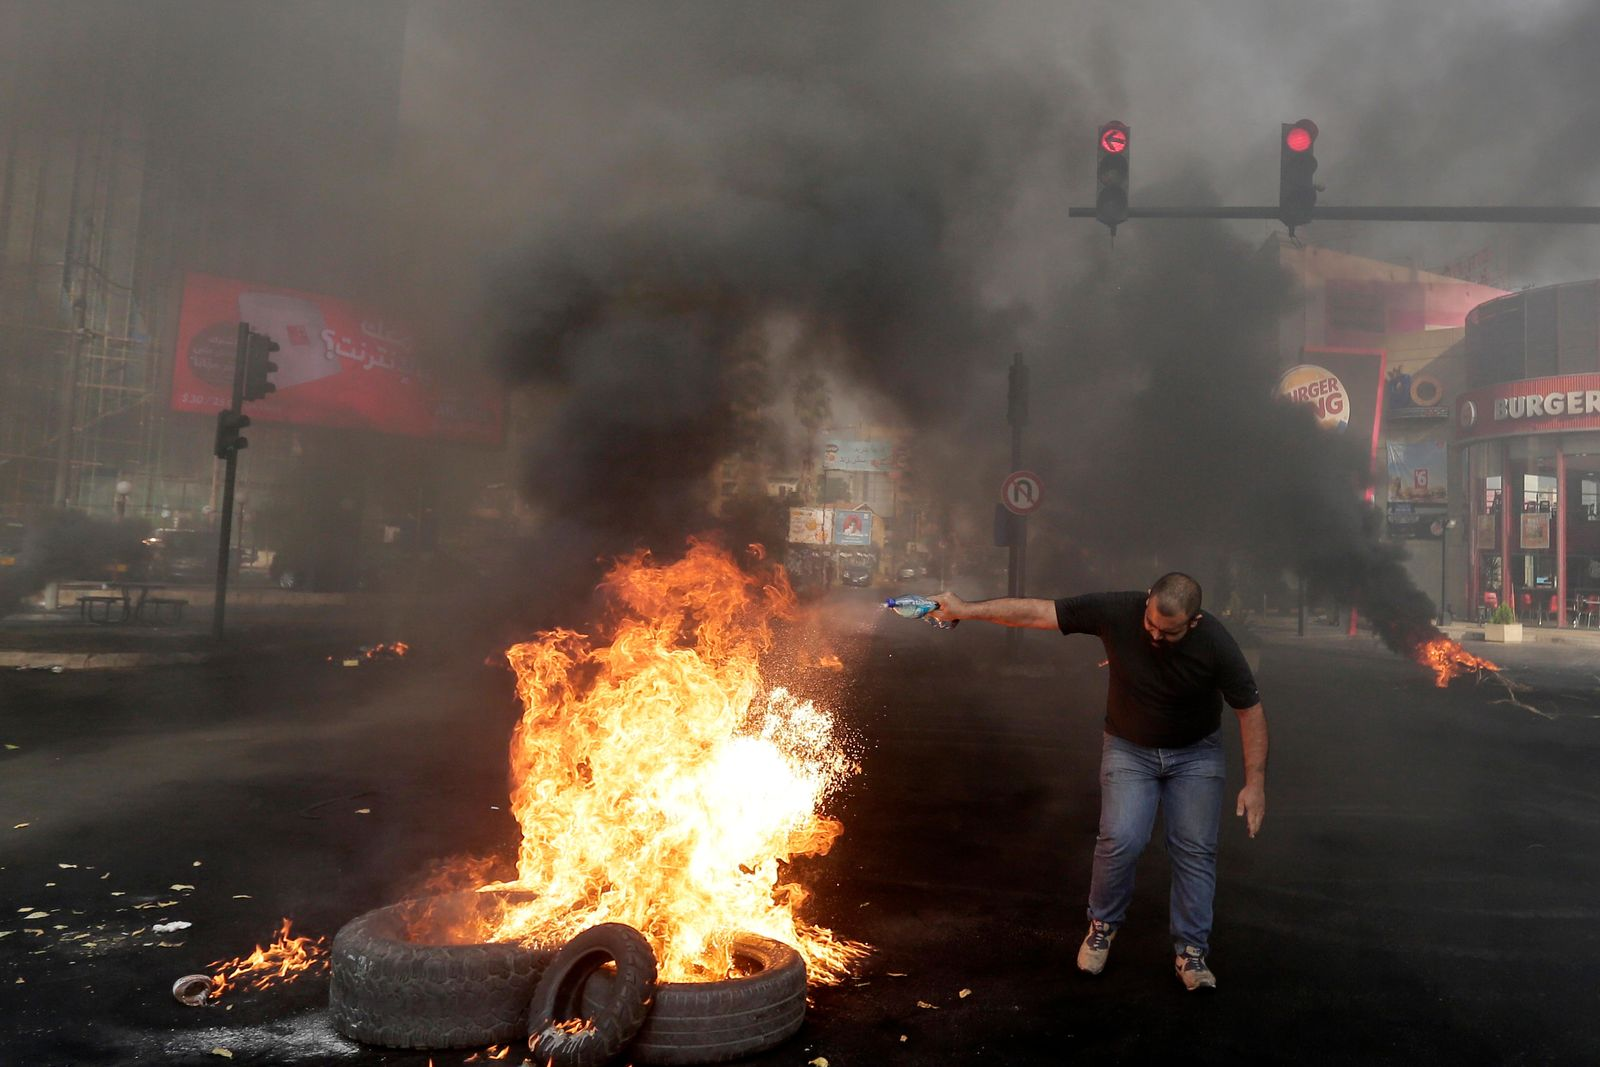 An anti-government protester sets fire on tires to block a road during a protest against government's plans to impose new taxes in Beirut, Lebanon, Friday, Oct. 18, 2019. (AP Photo/Hassan Ammar)